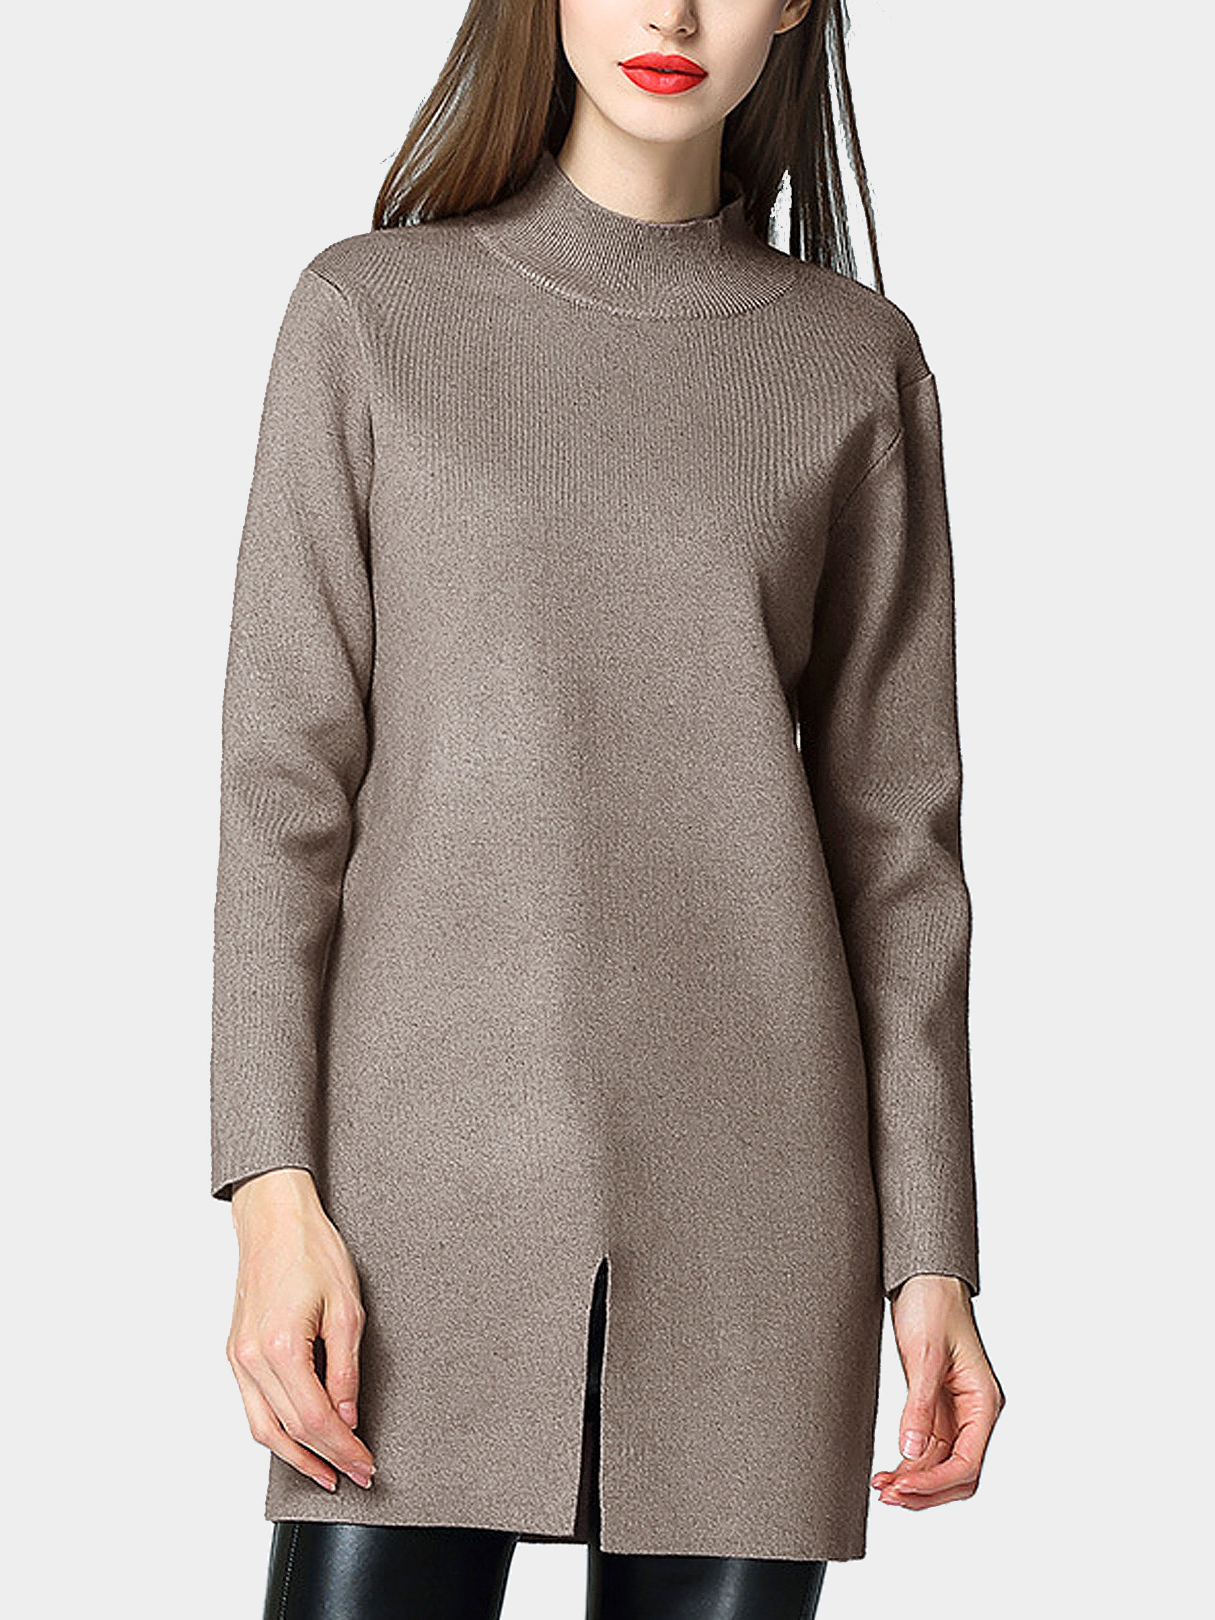 High Neck Front Split Tunic Sweater Dress